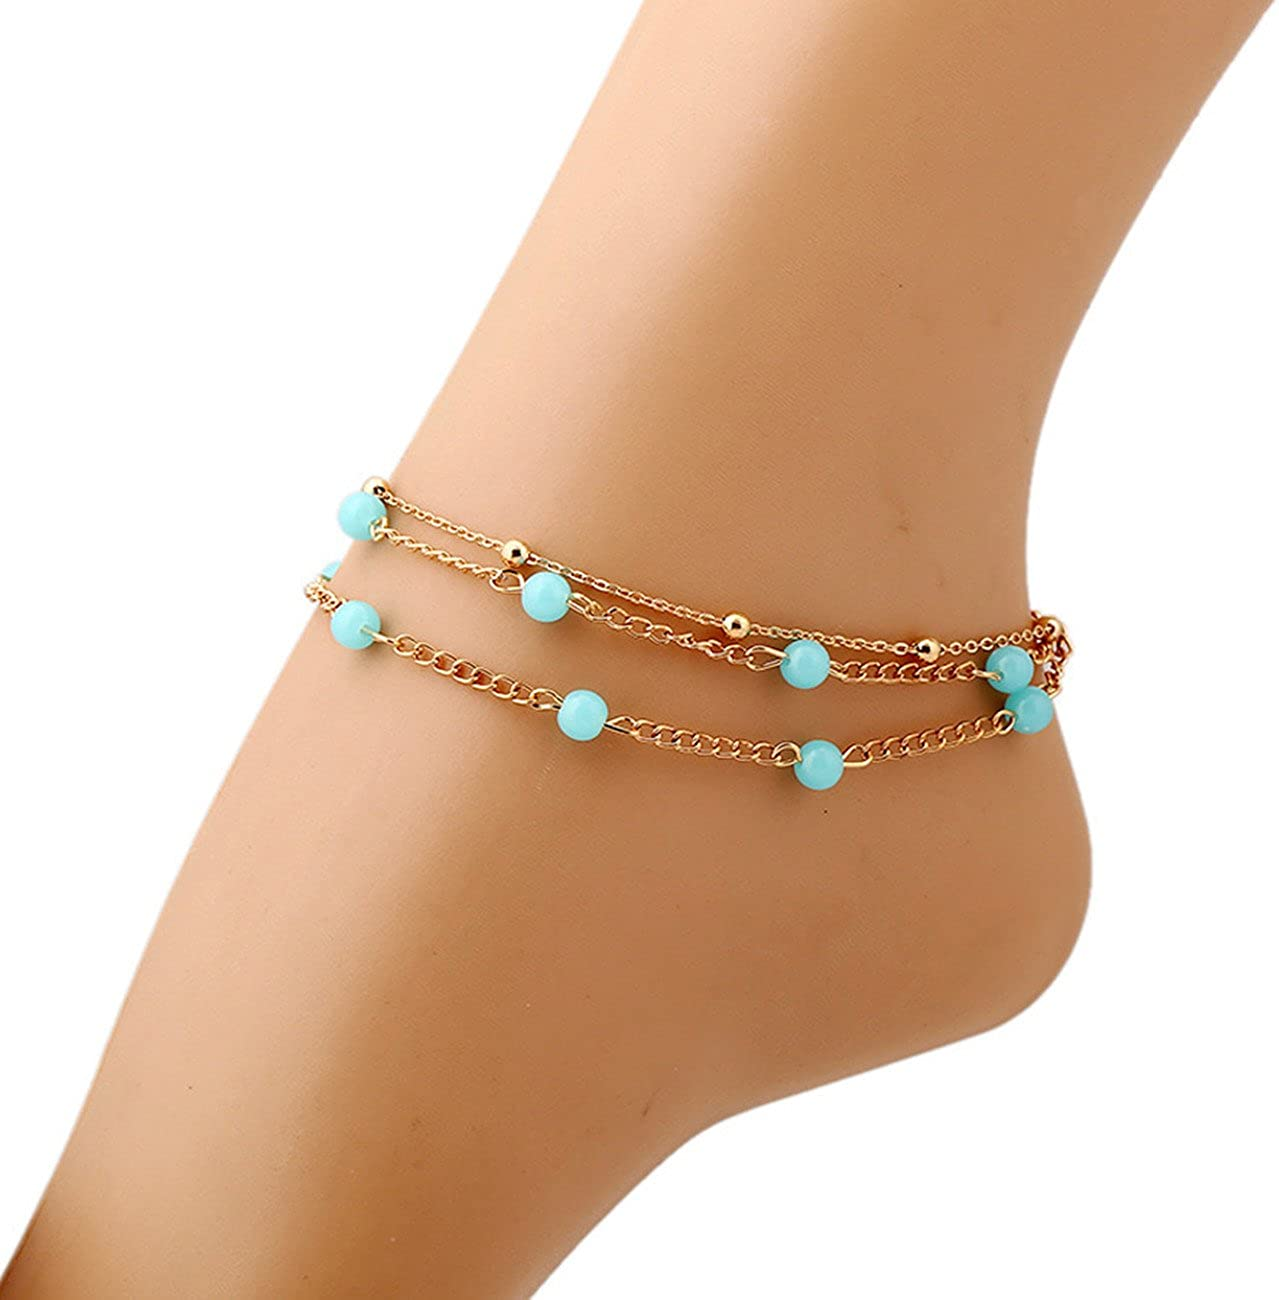 OCTCHOCO Three Piece Gold Plated Chain Blue Beads Ankle Bracelet Barefoot Sandal Beach Foot Jewelry